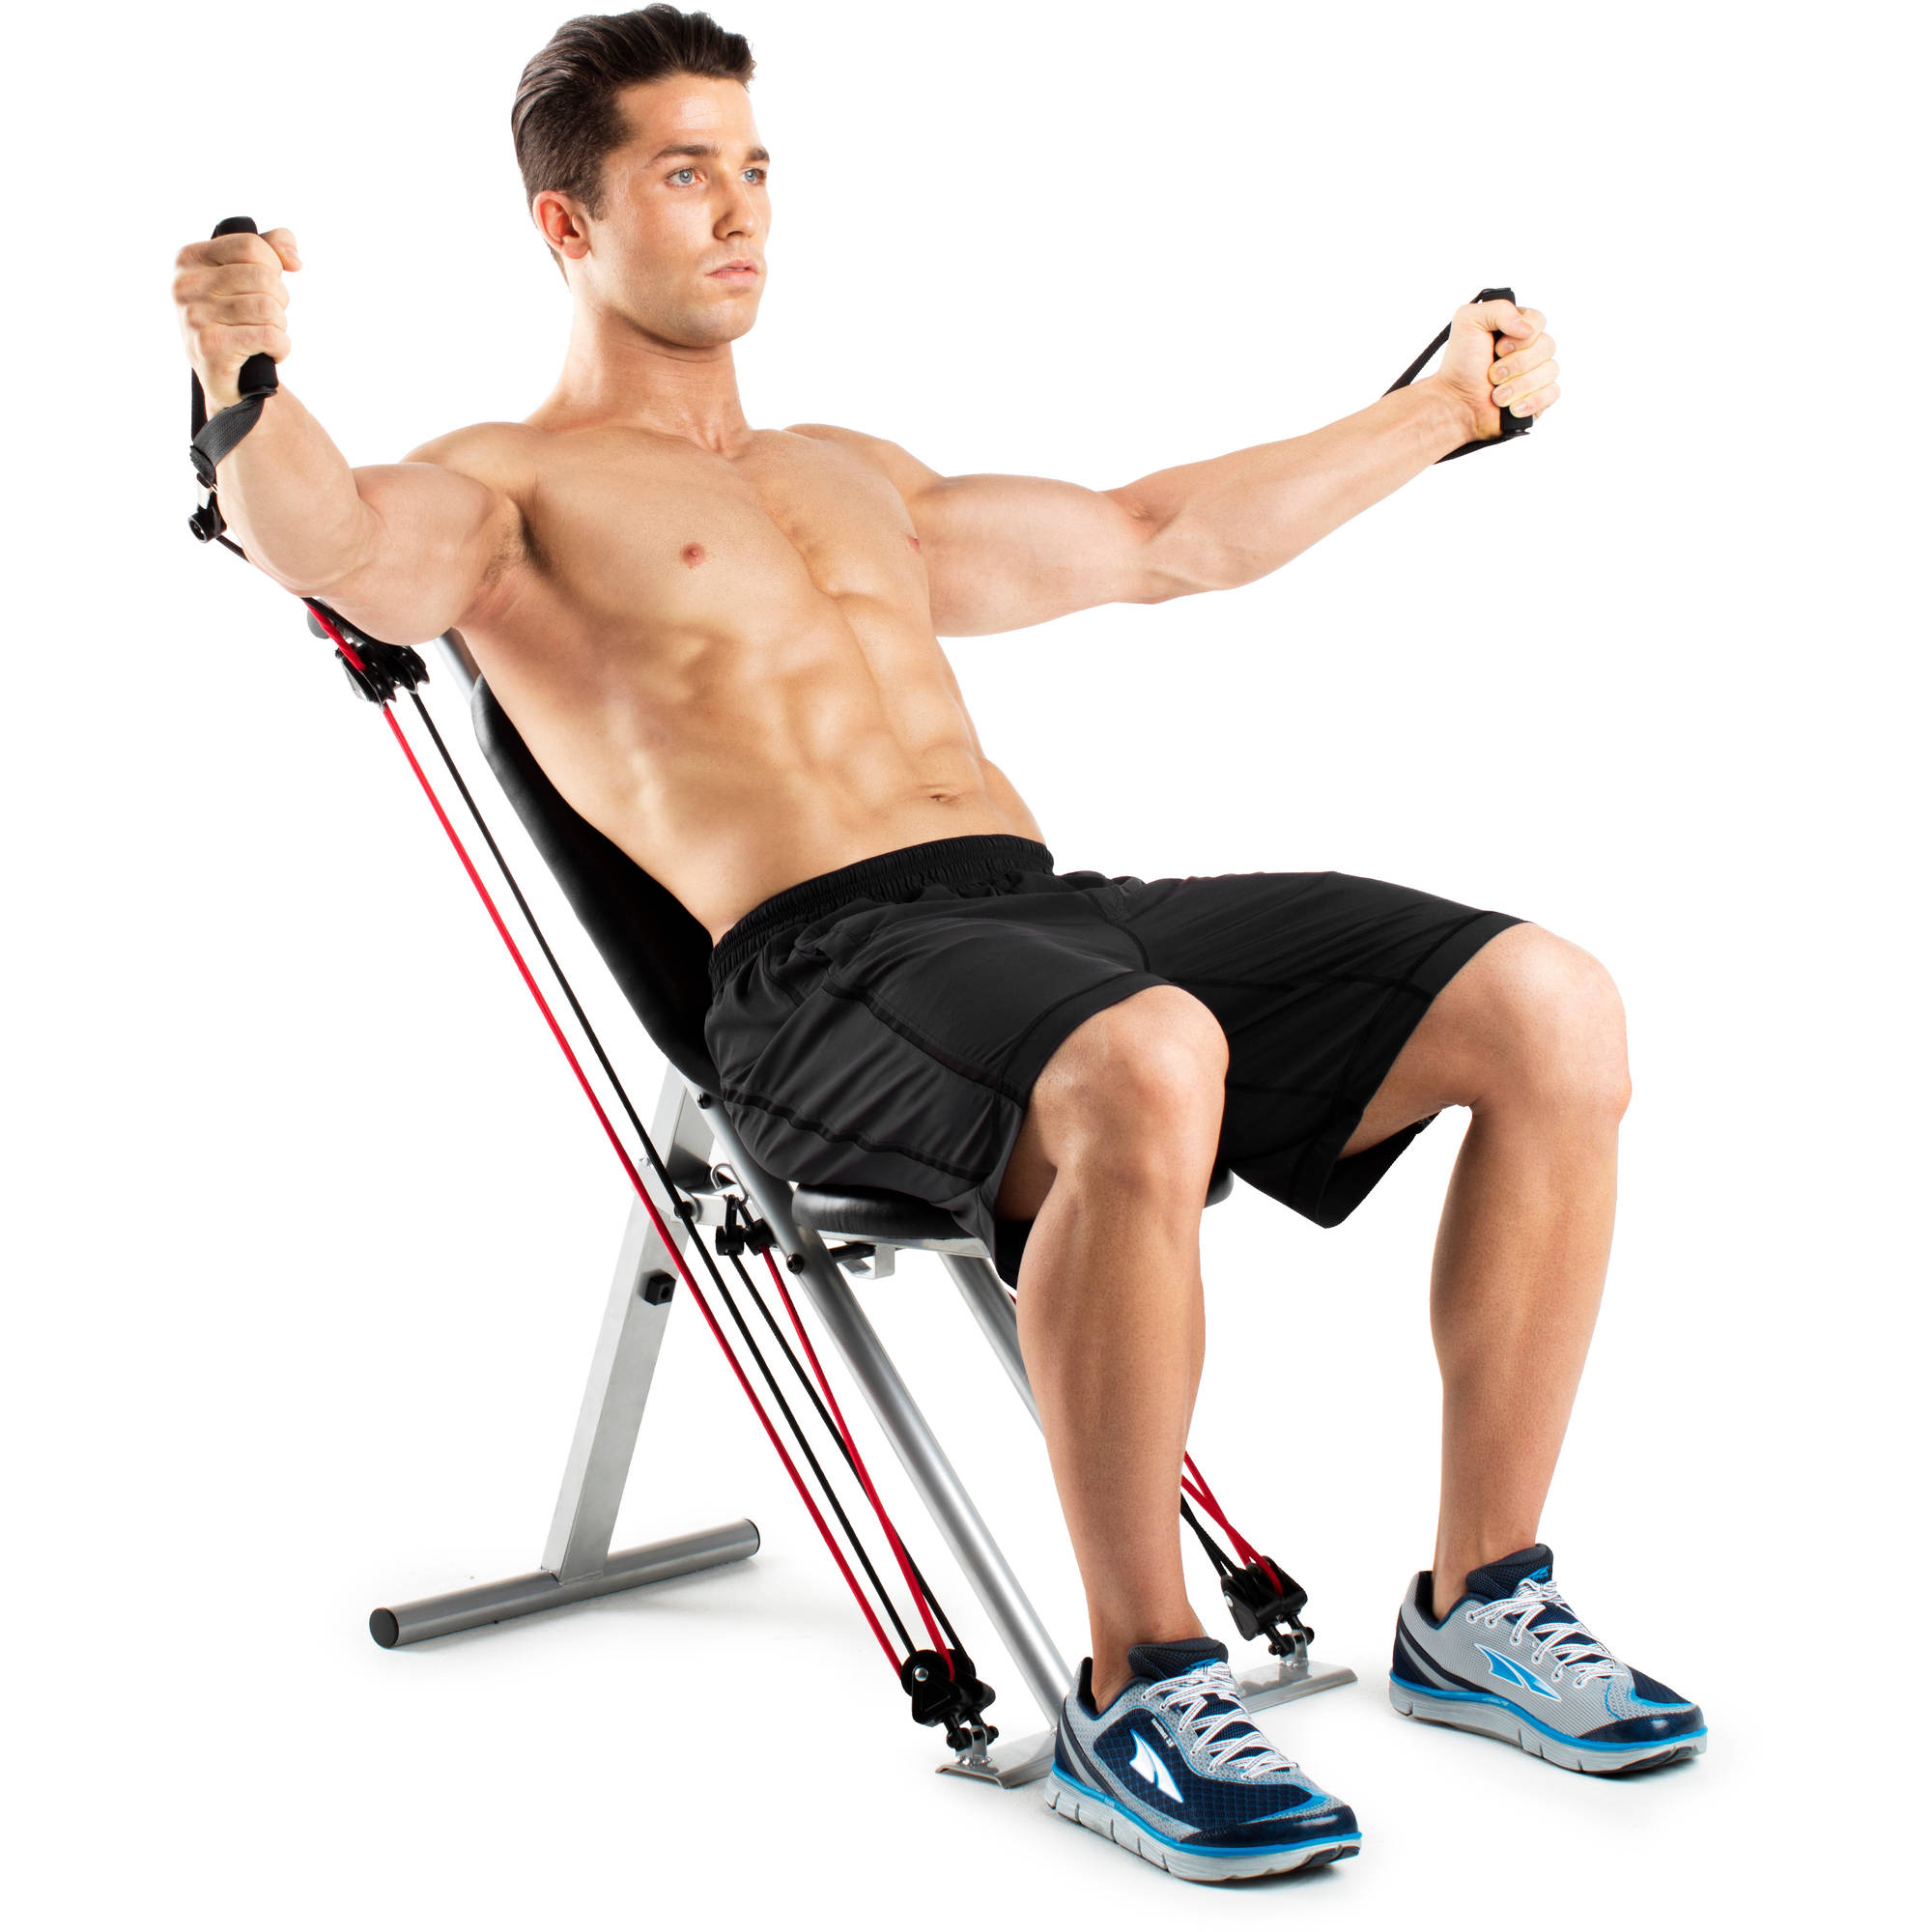 Easy Home Exercise Equipment: Weider Pro 256 Bench/Combo Set